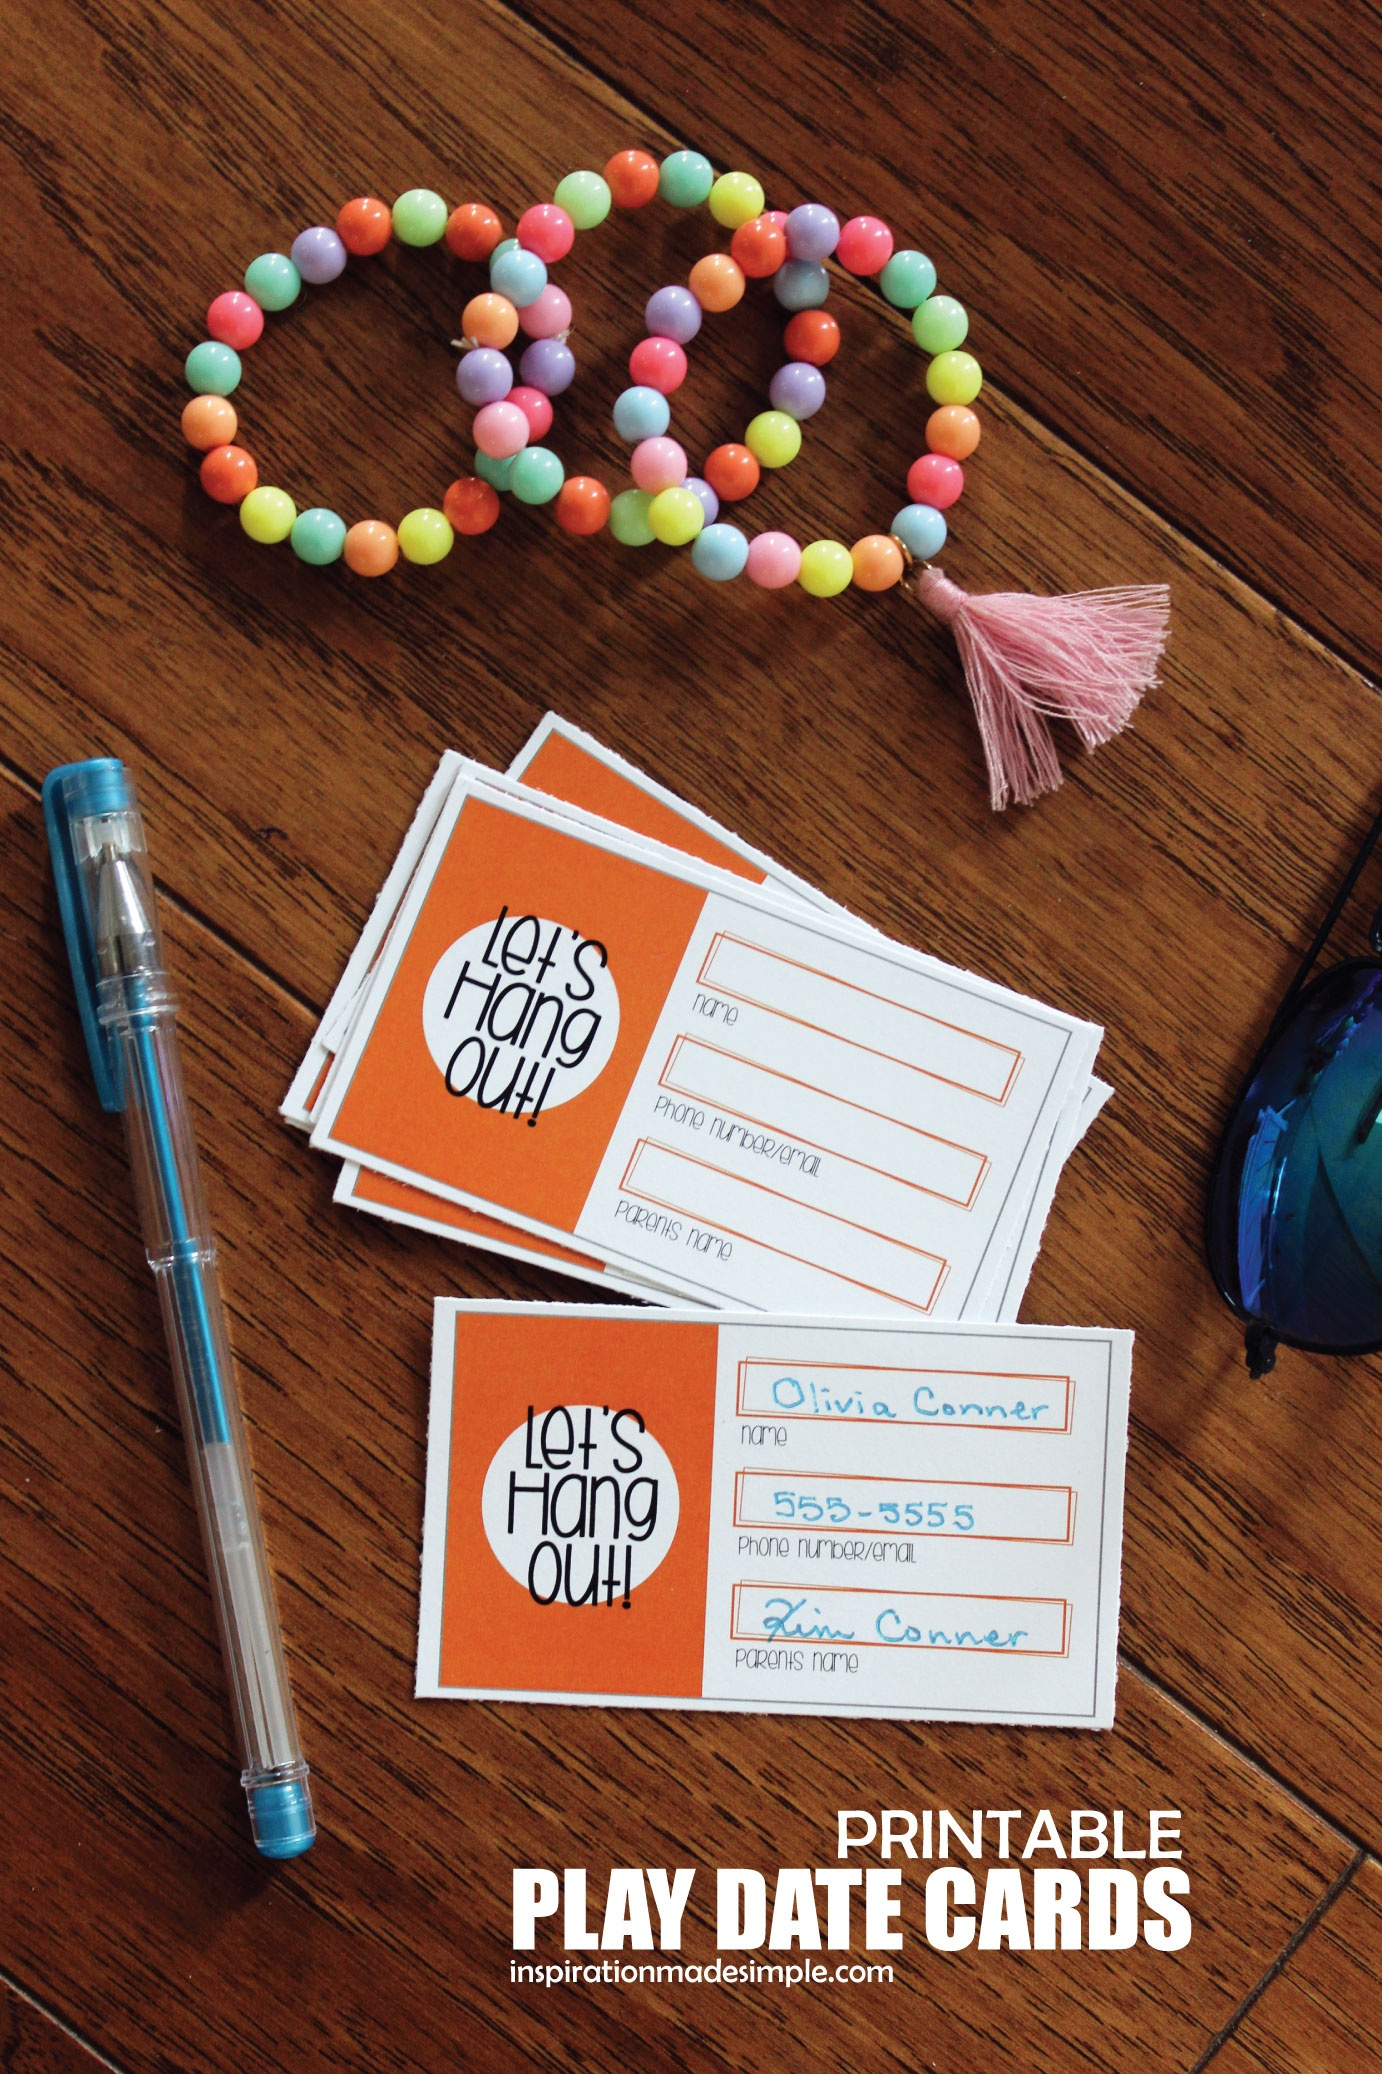 Printable Play Date Cards For Kids - Inspiration Made Simple - Free Printable Play Date Cards